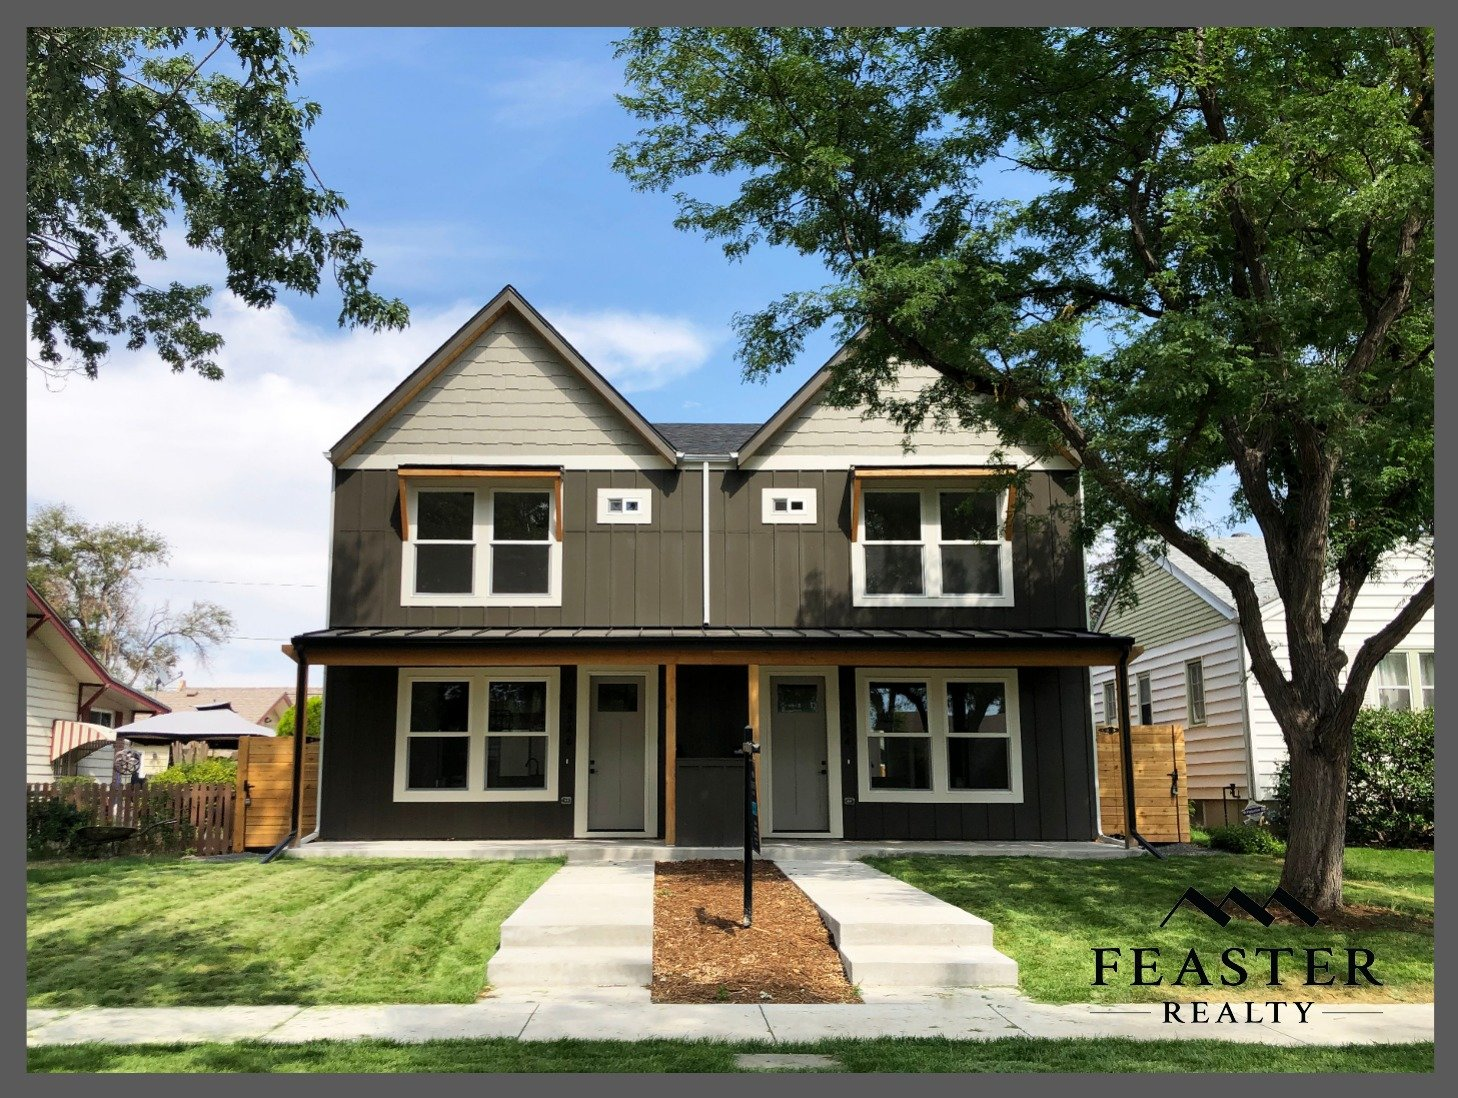 Modern Farmhouse in Berkeley Denver CO | Feaster Realty